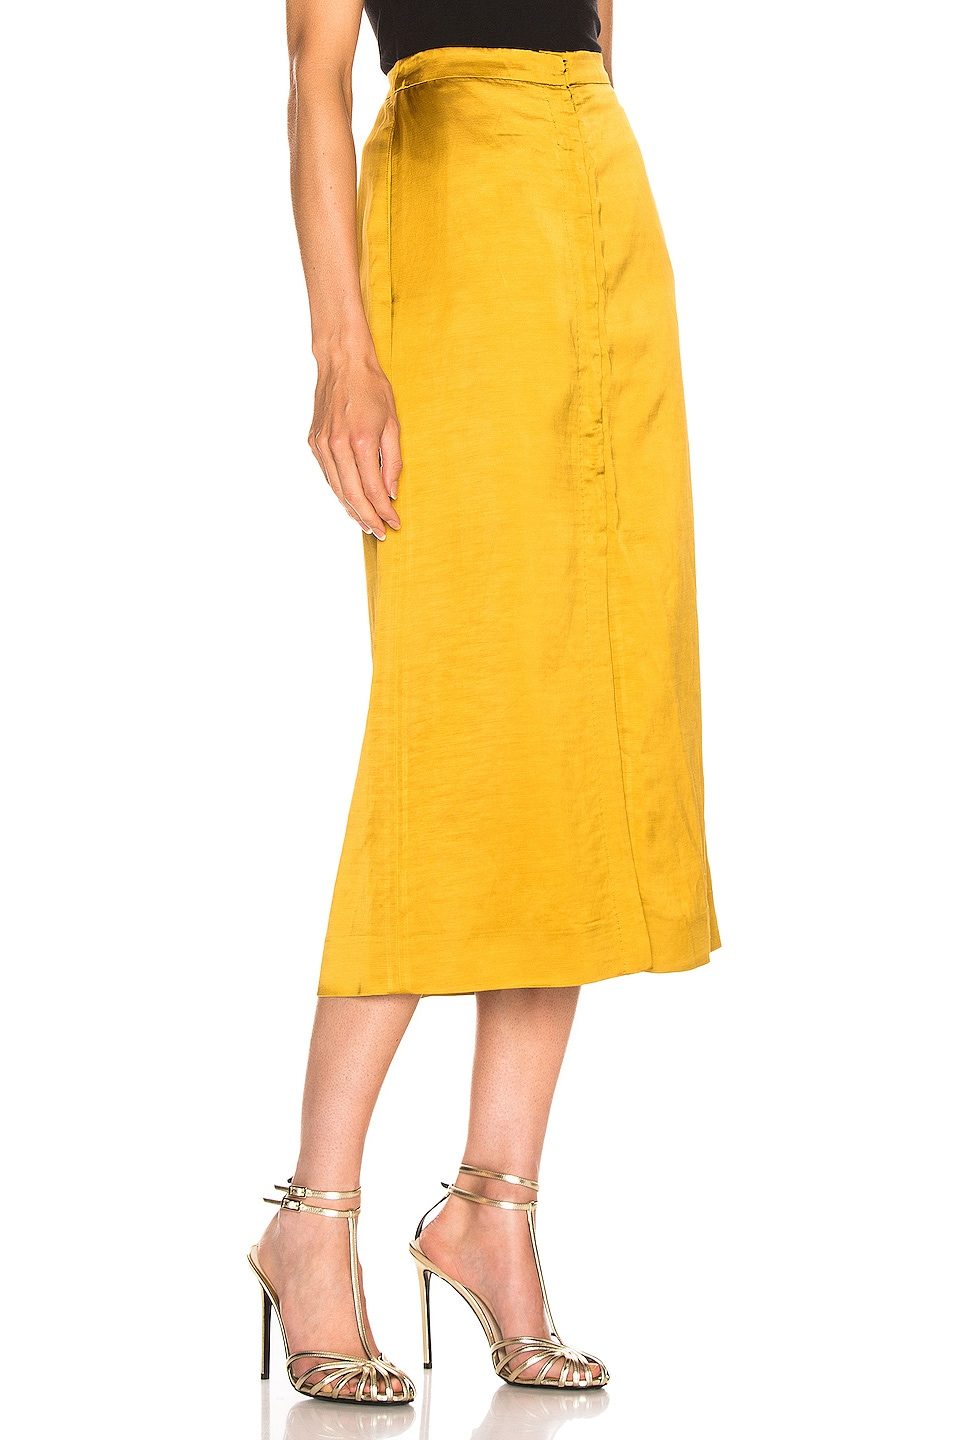 Image 2 of Brock Collection Objective Ladies Skirt in Medium Yellow